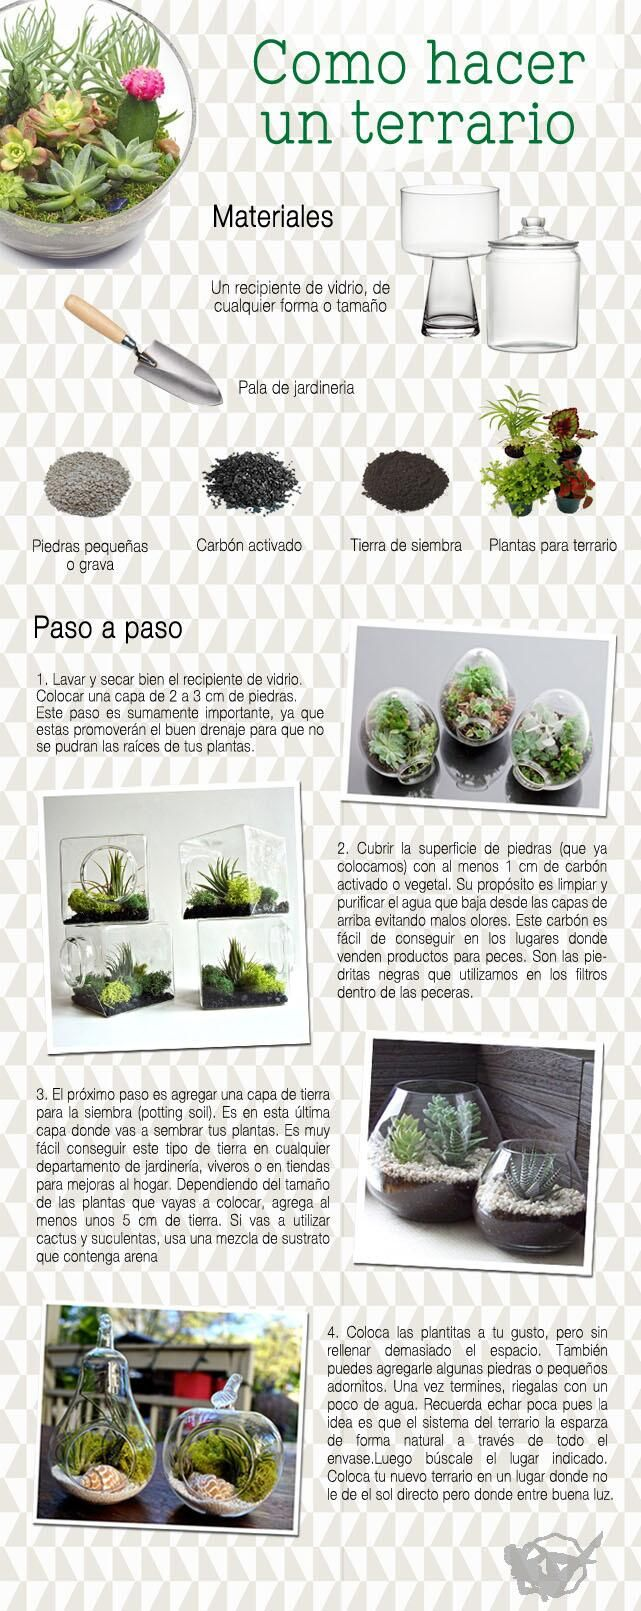 78 ideas about paisajismo en pinterest ideas de for Como hacer un perchero de pared